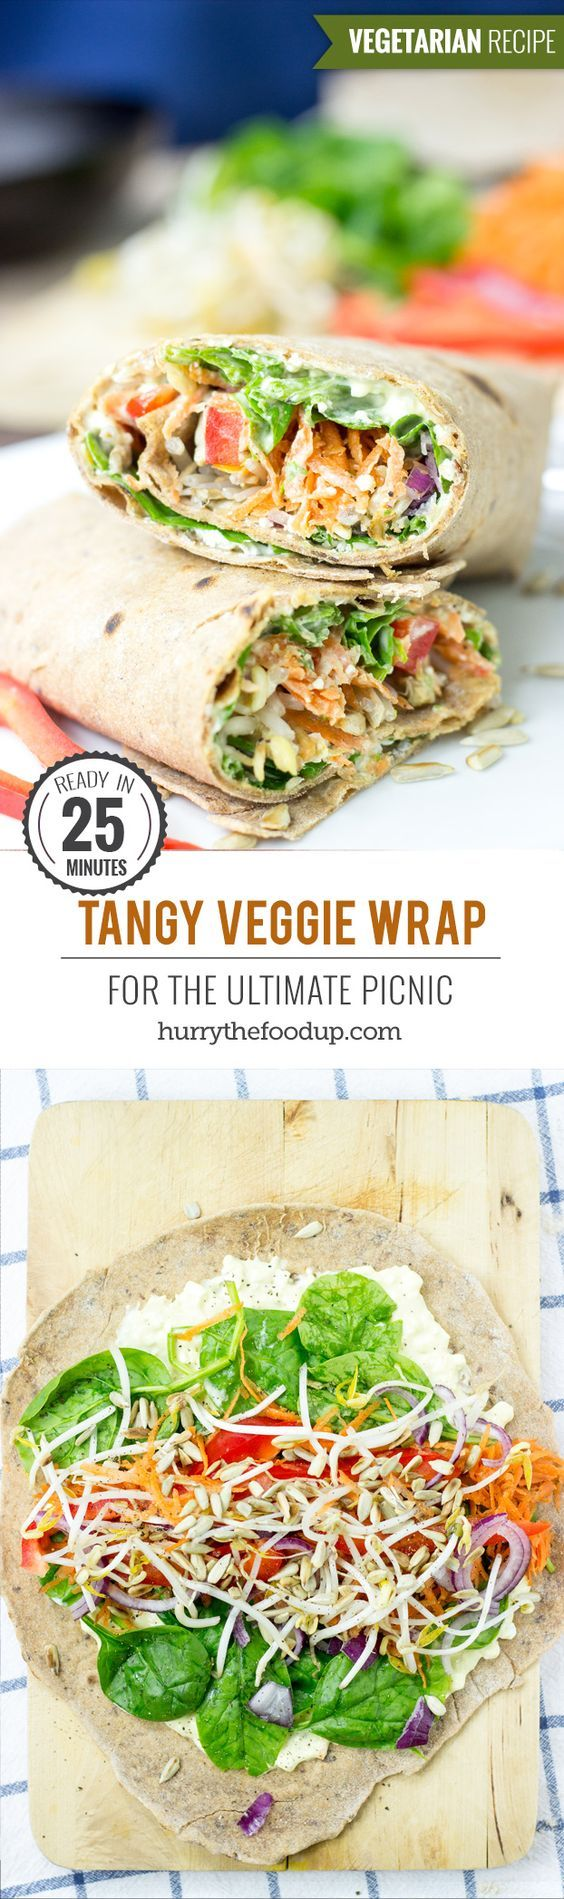 Tangy Veggie Wrap - For The Ultimate Picnic